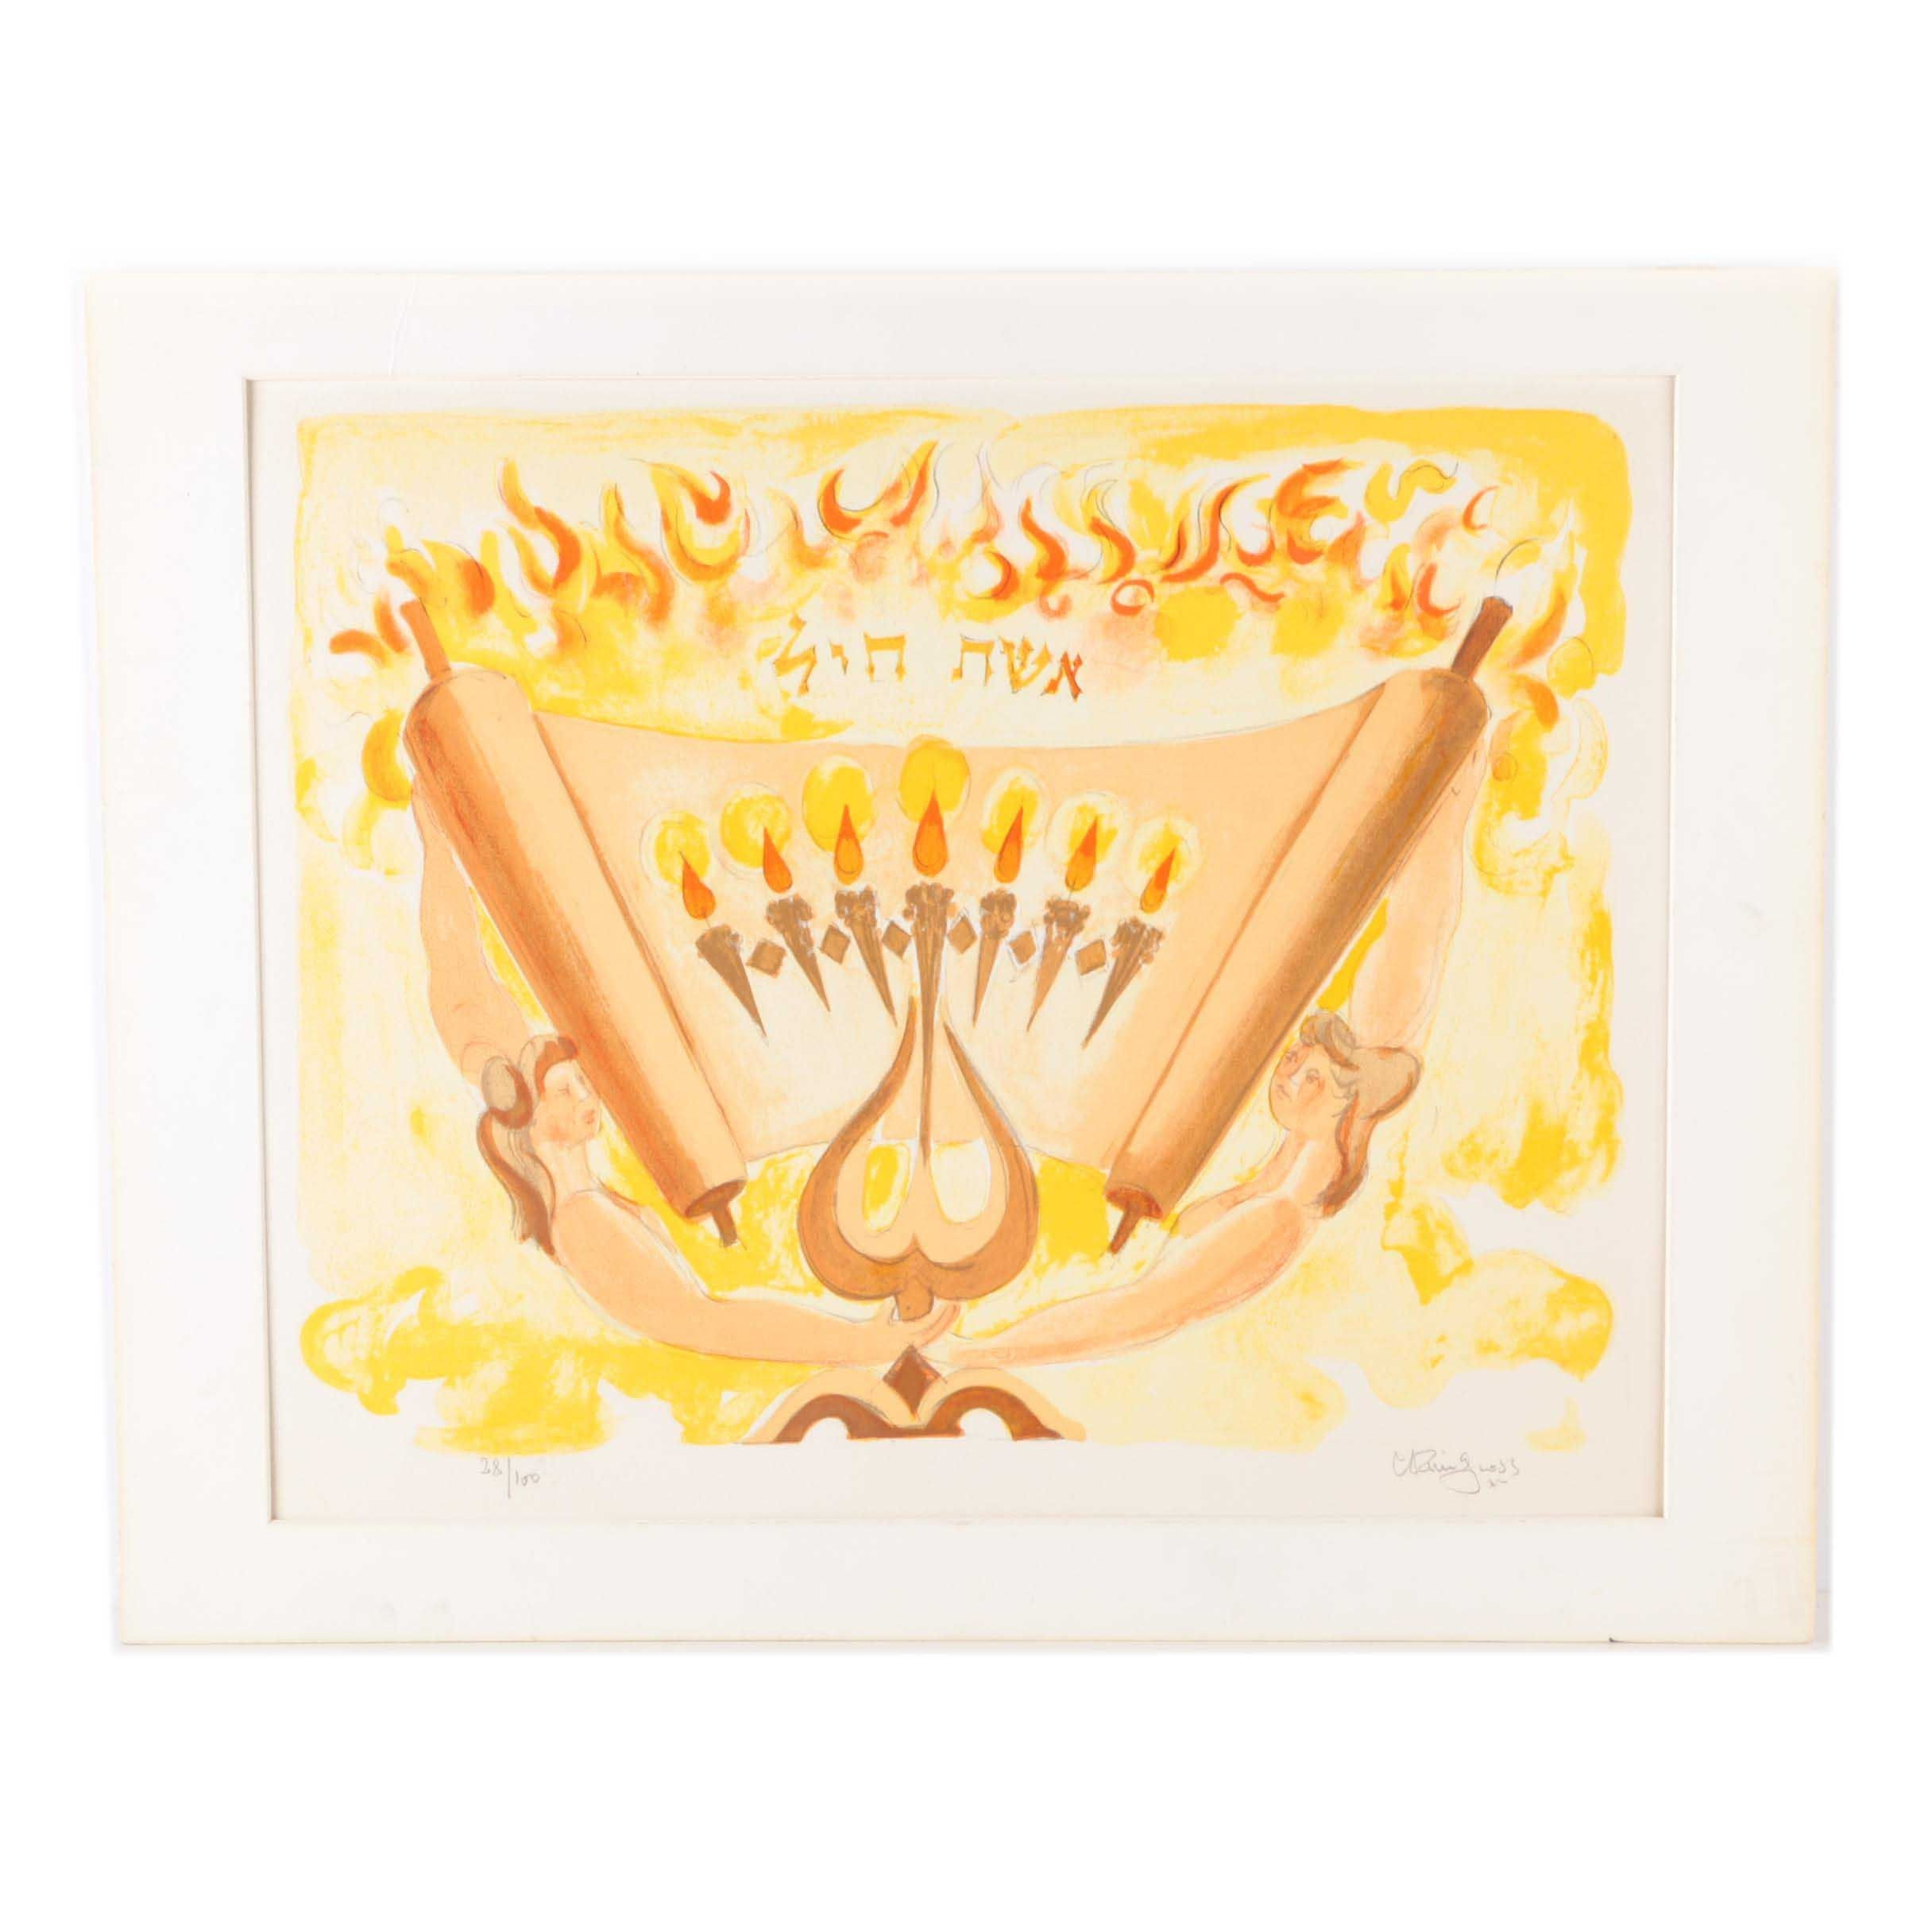 Chaim Gross Limited Edition Lithograph on Paper